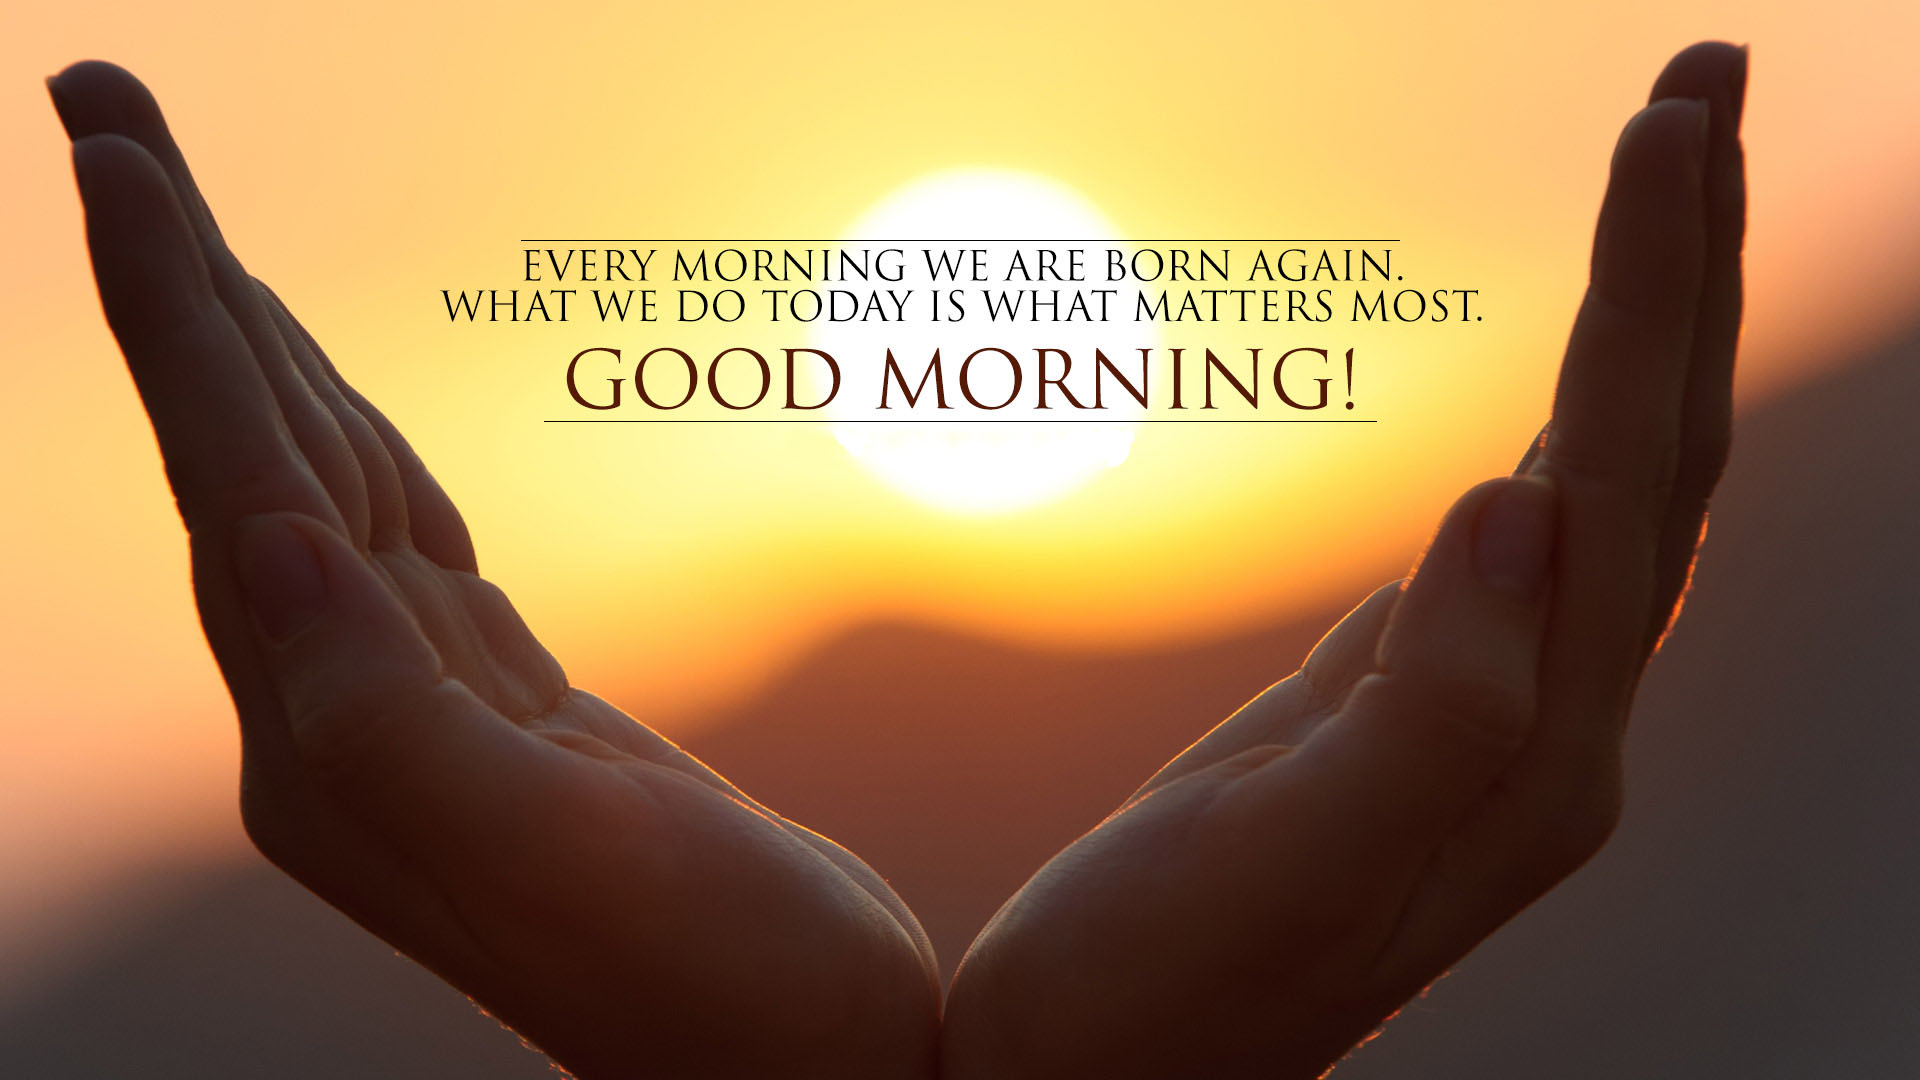 Amazing Love Quotes Wallpapers Beautiful Good Morning Nature Images With Quotes